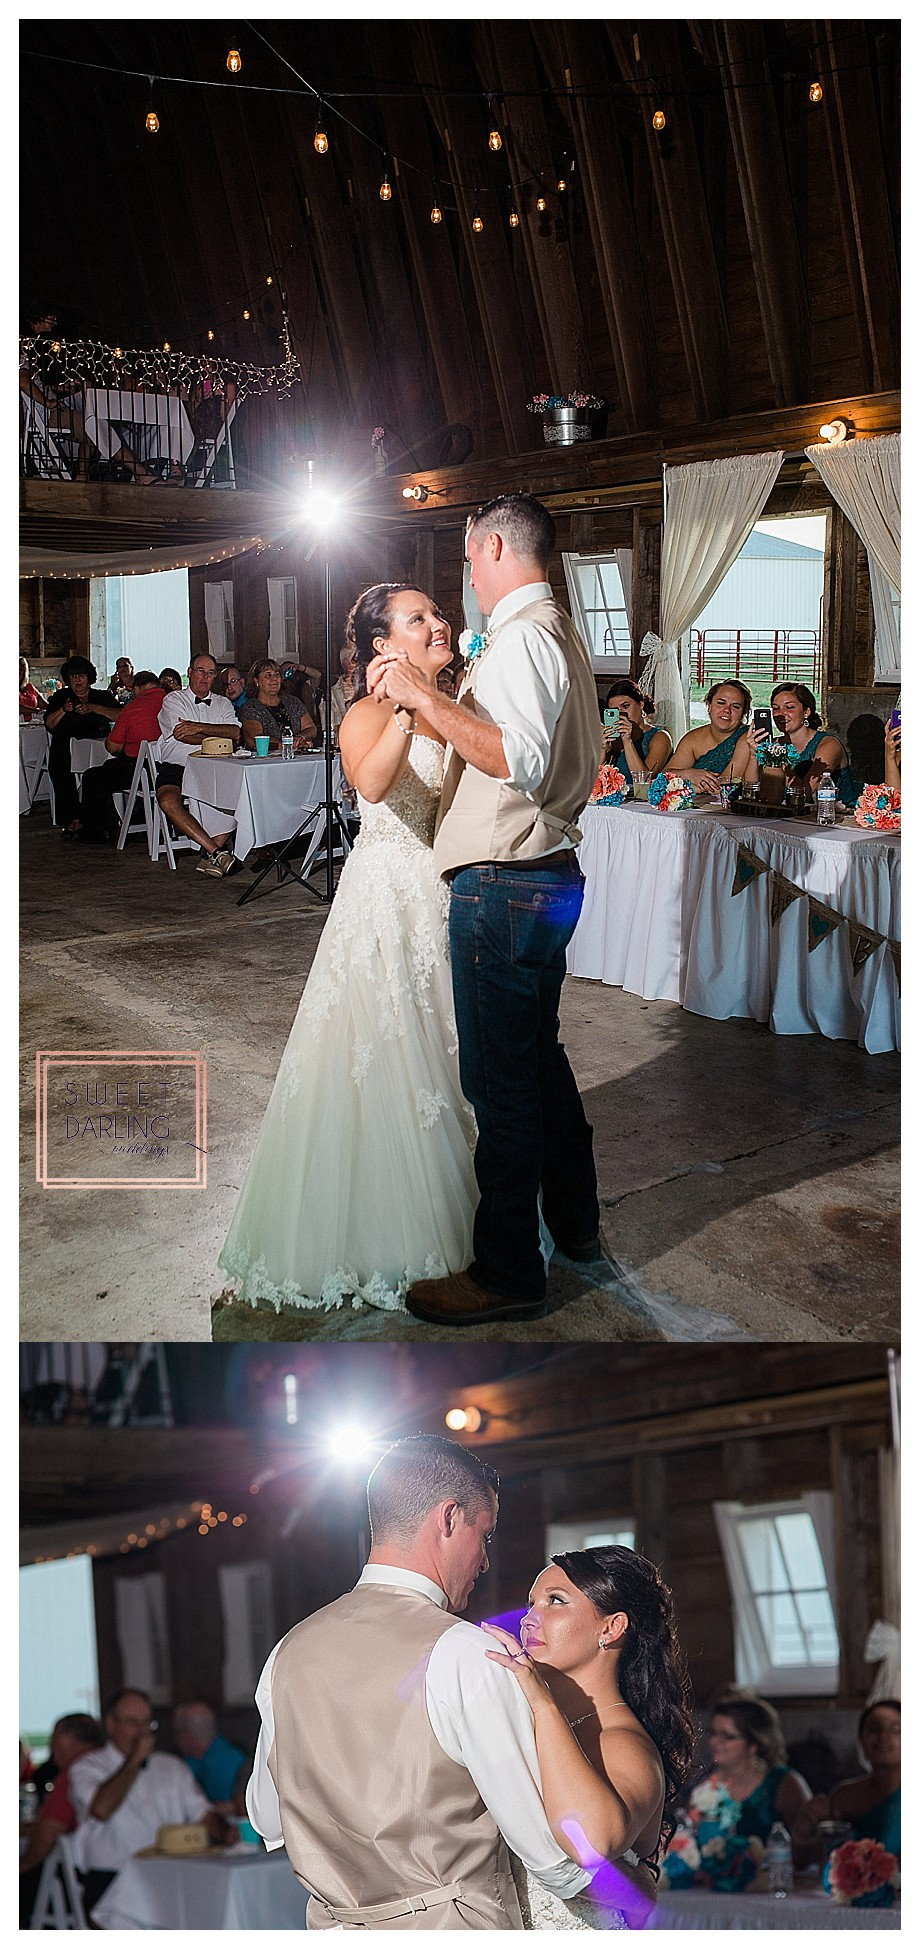 bride and groom first dance in a barn at wedding